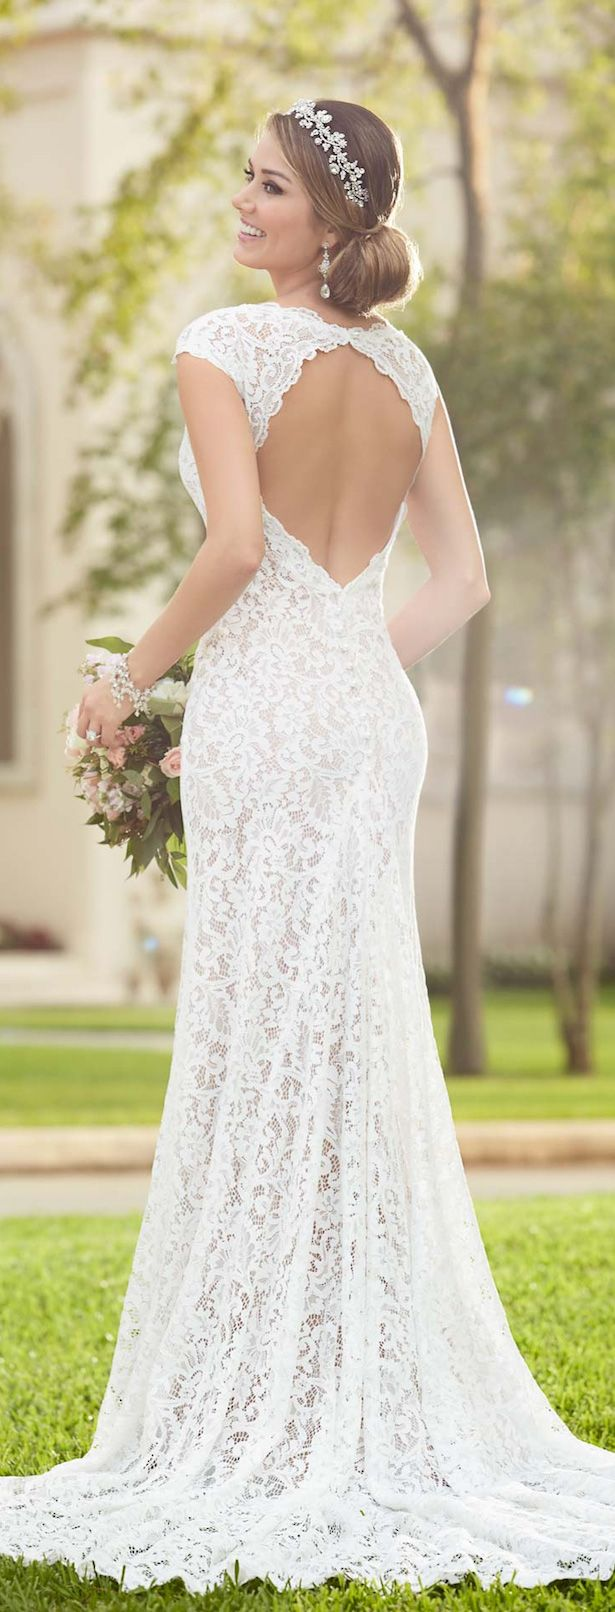 207 best Stella York images on Pinterest | Short wedding gowns ...